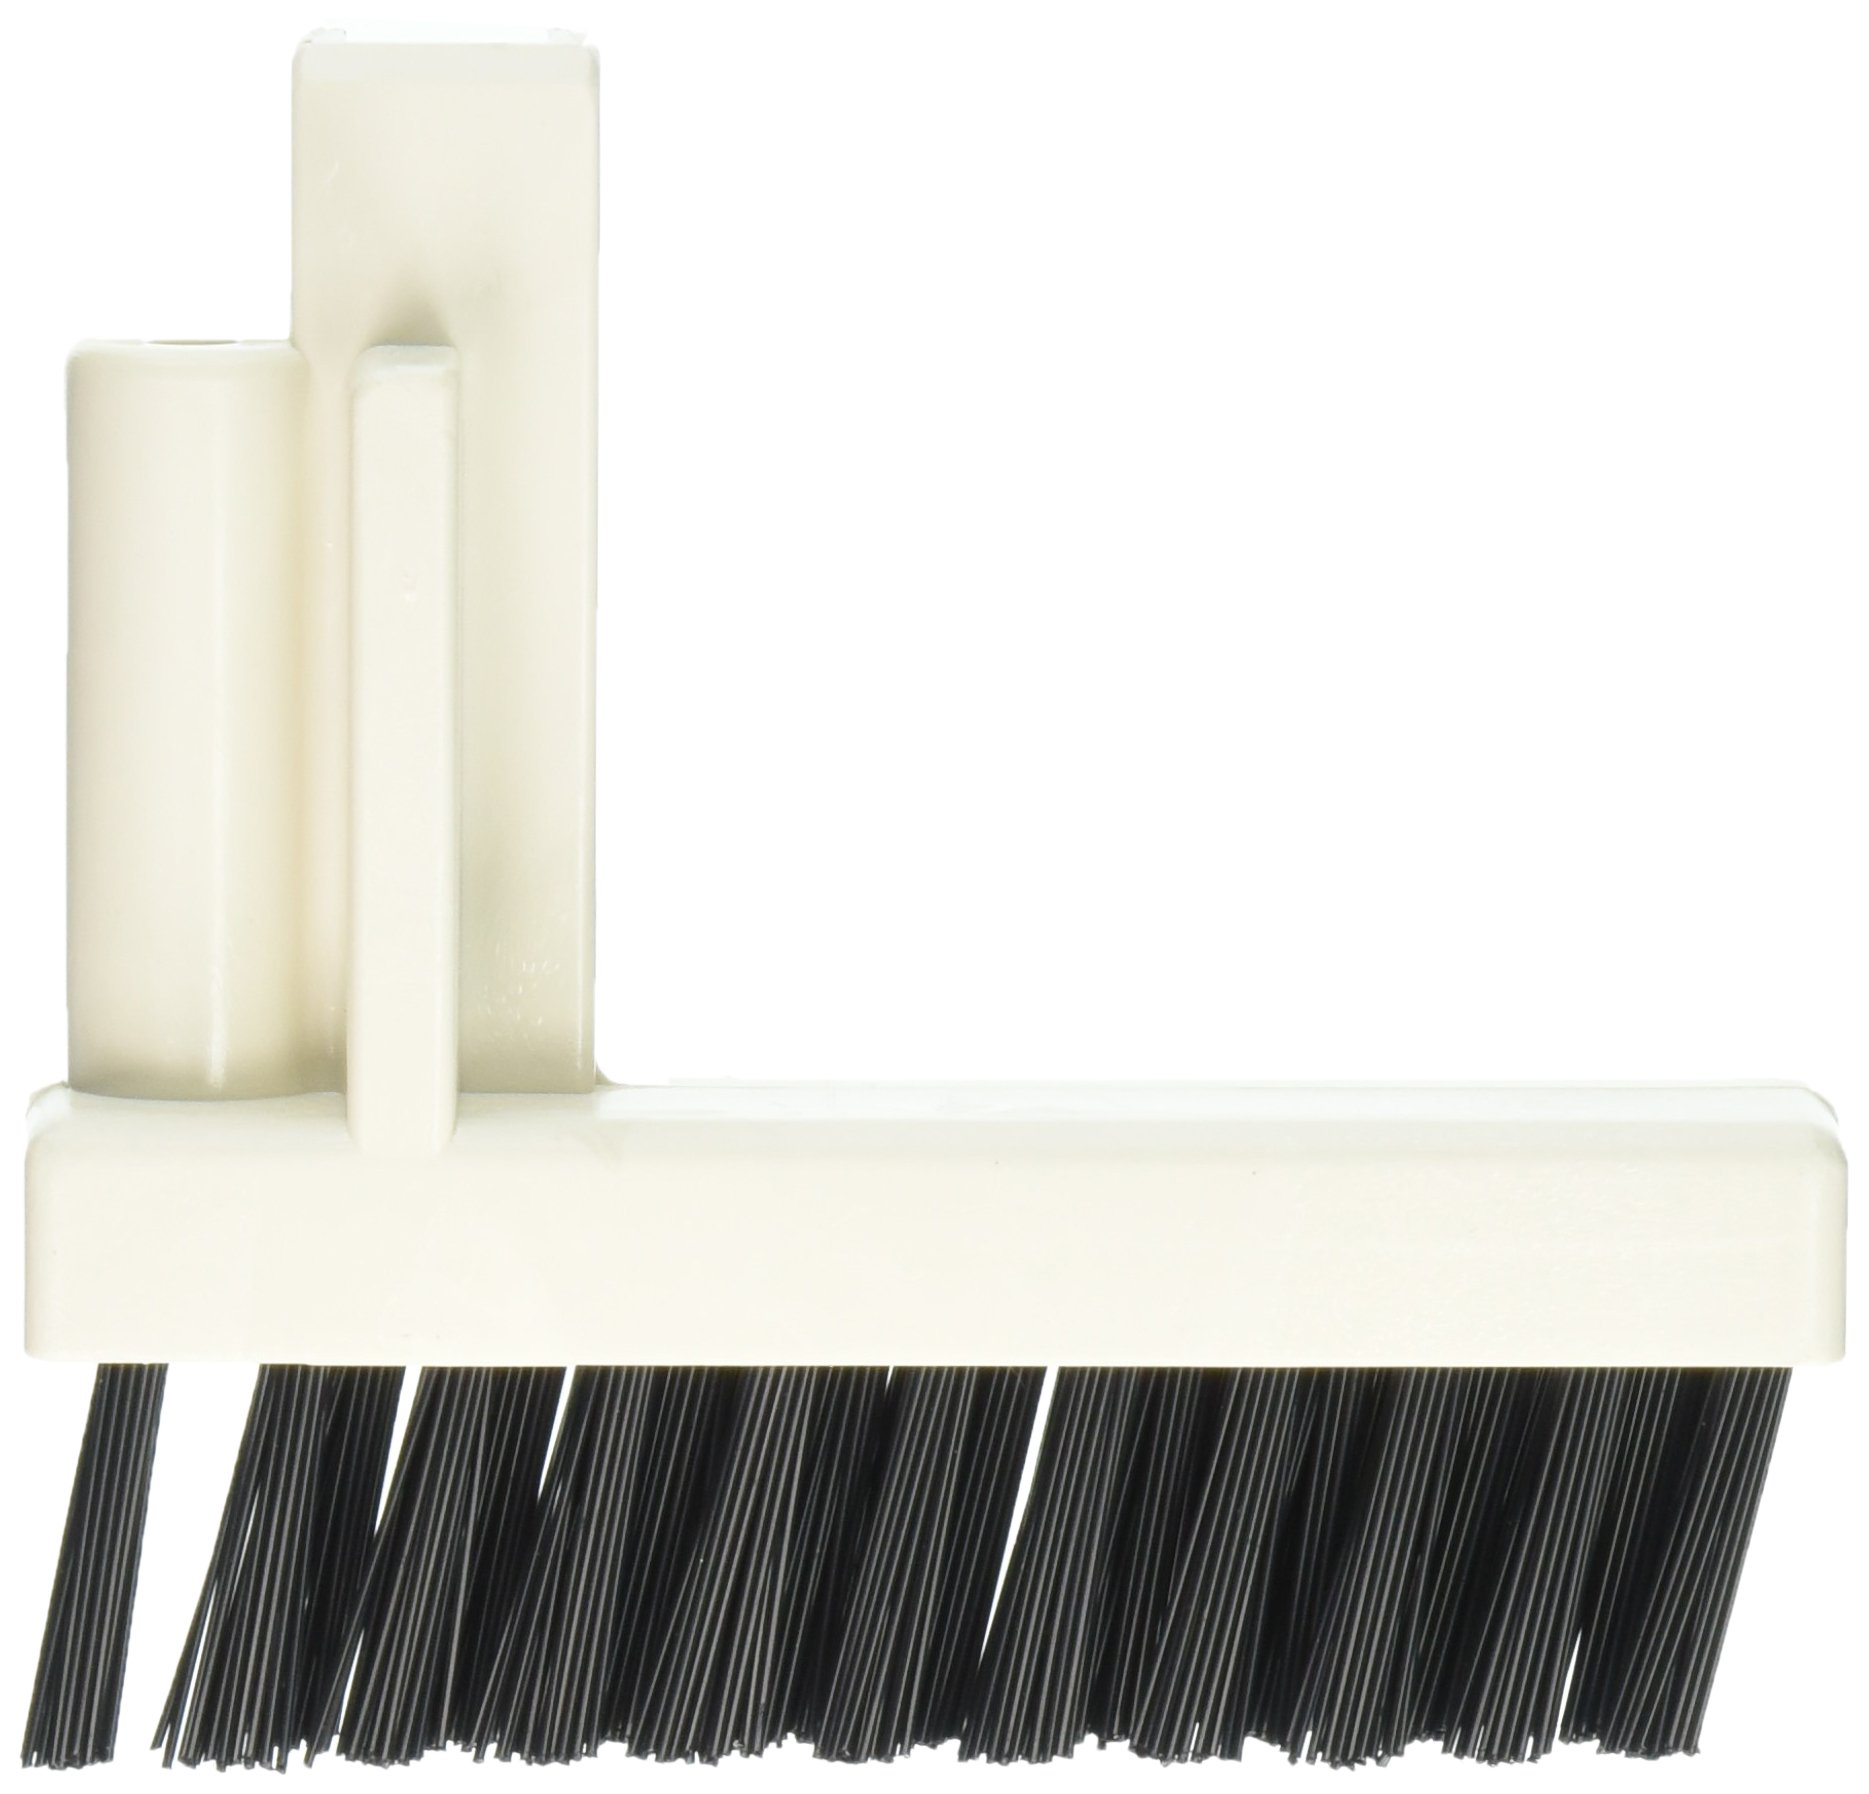 Pentair GW9517 Lift Brush Replacement Kreepy Krauly Great White GW9500 Automatic Pool and Spa Cleaner